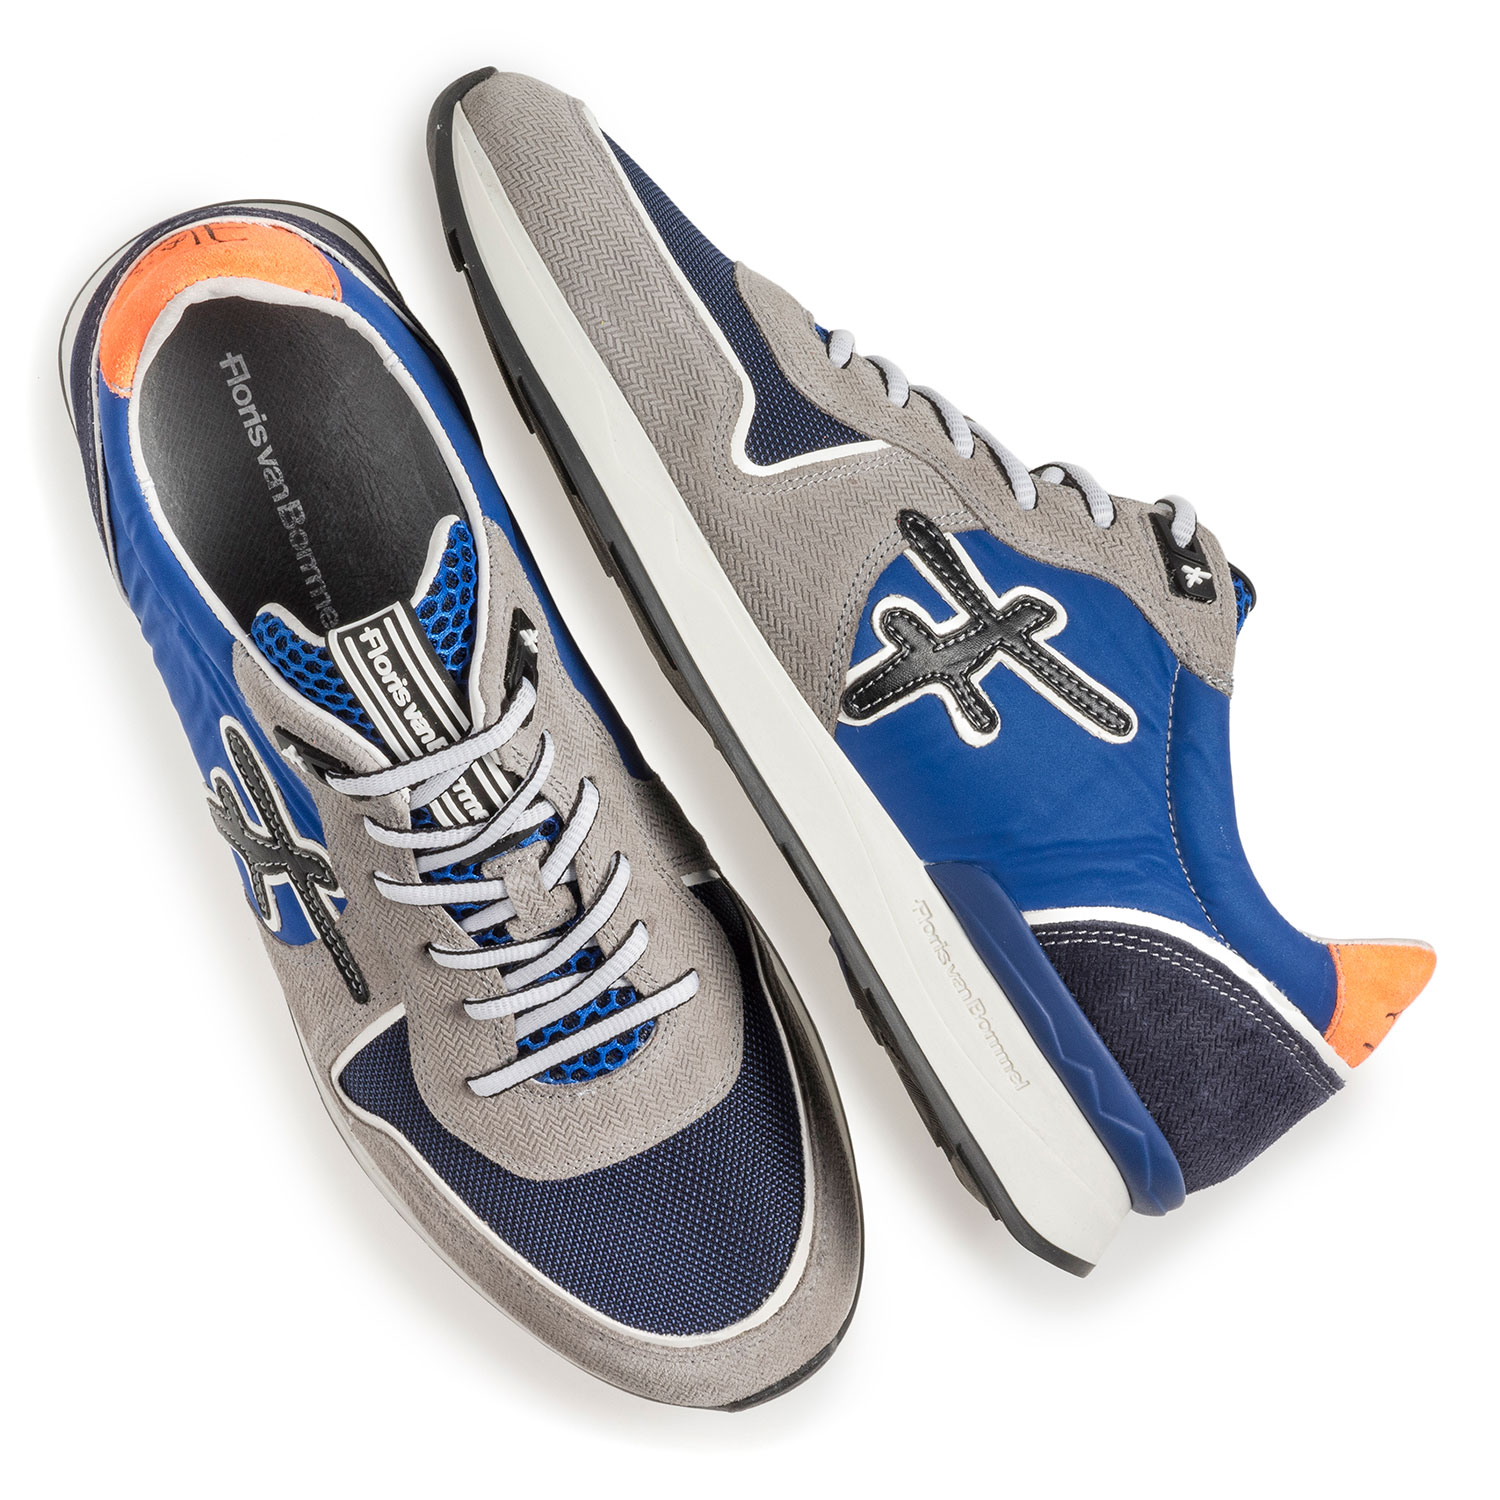 16346/05 - Grey and blue suede leather sneaker